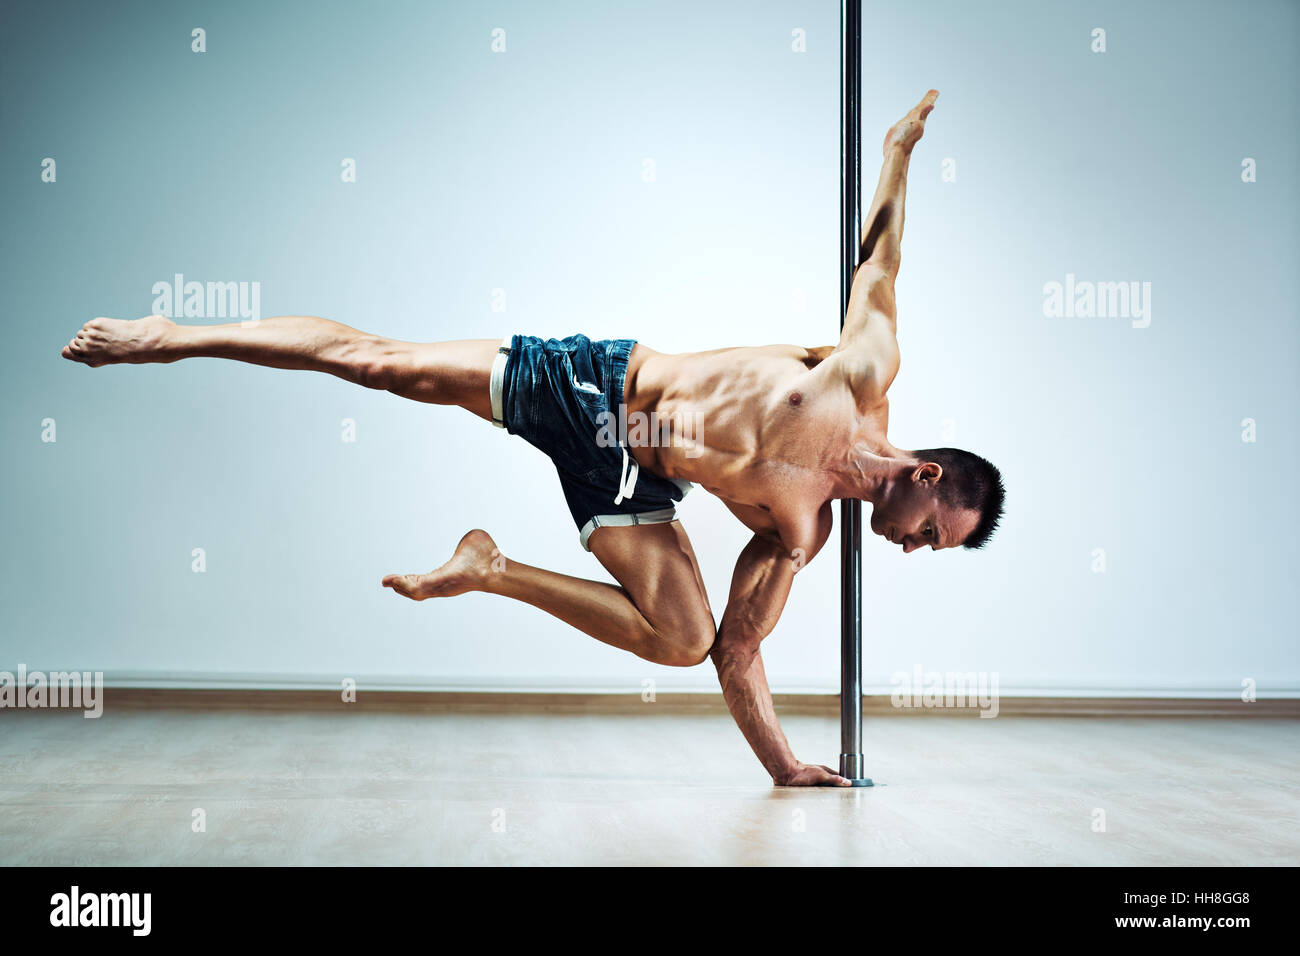 pole dance for man